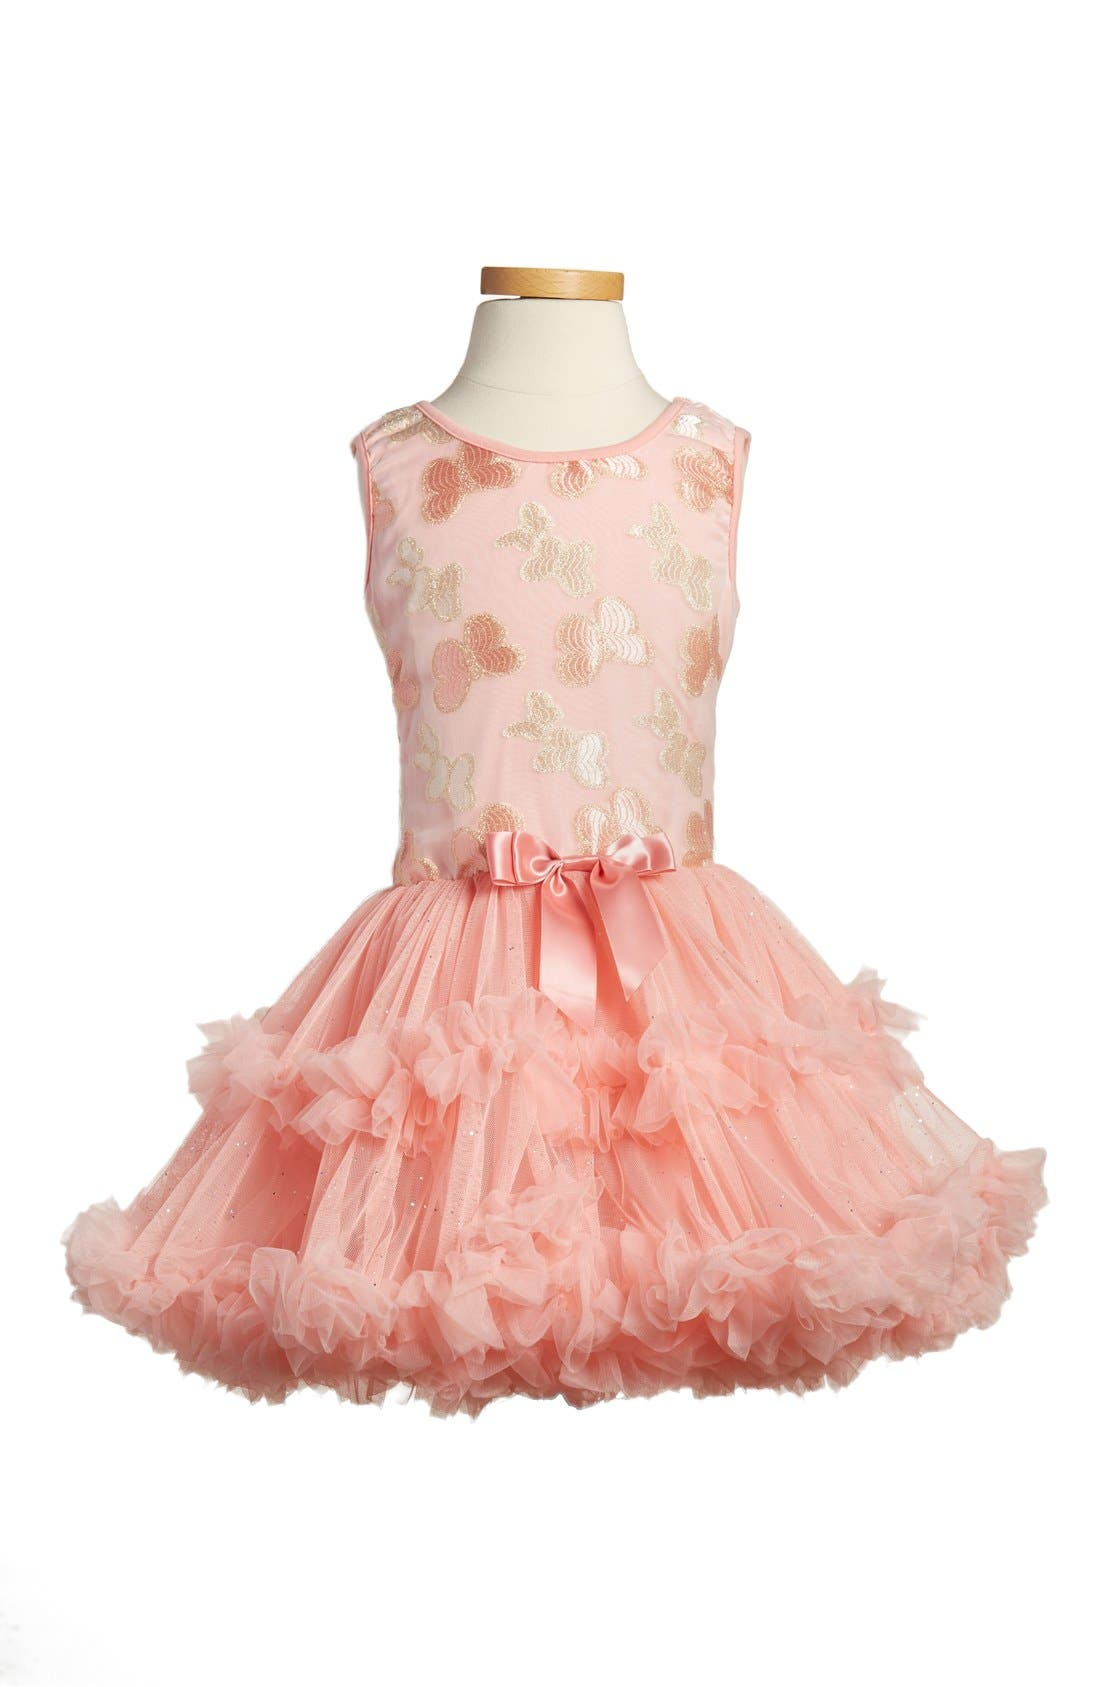 'Butterfly' Sleeveless Party Dress,                             Main thumbnail 1, color,                             PEACH